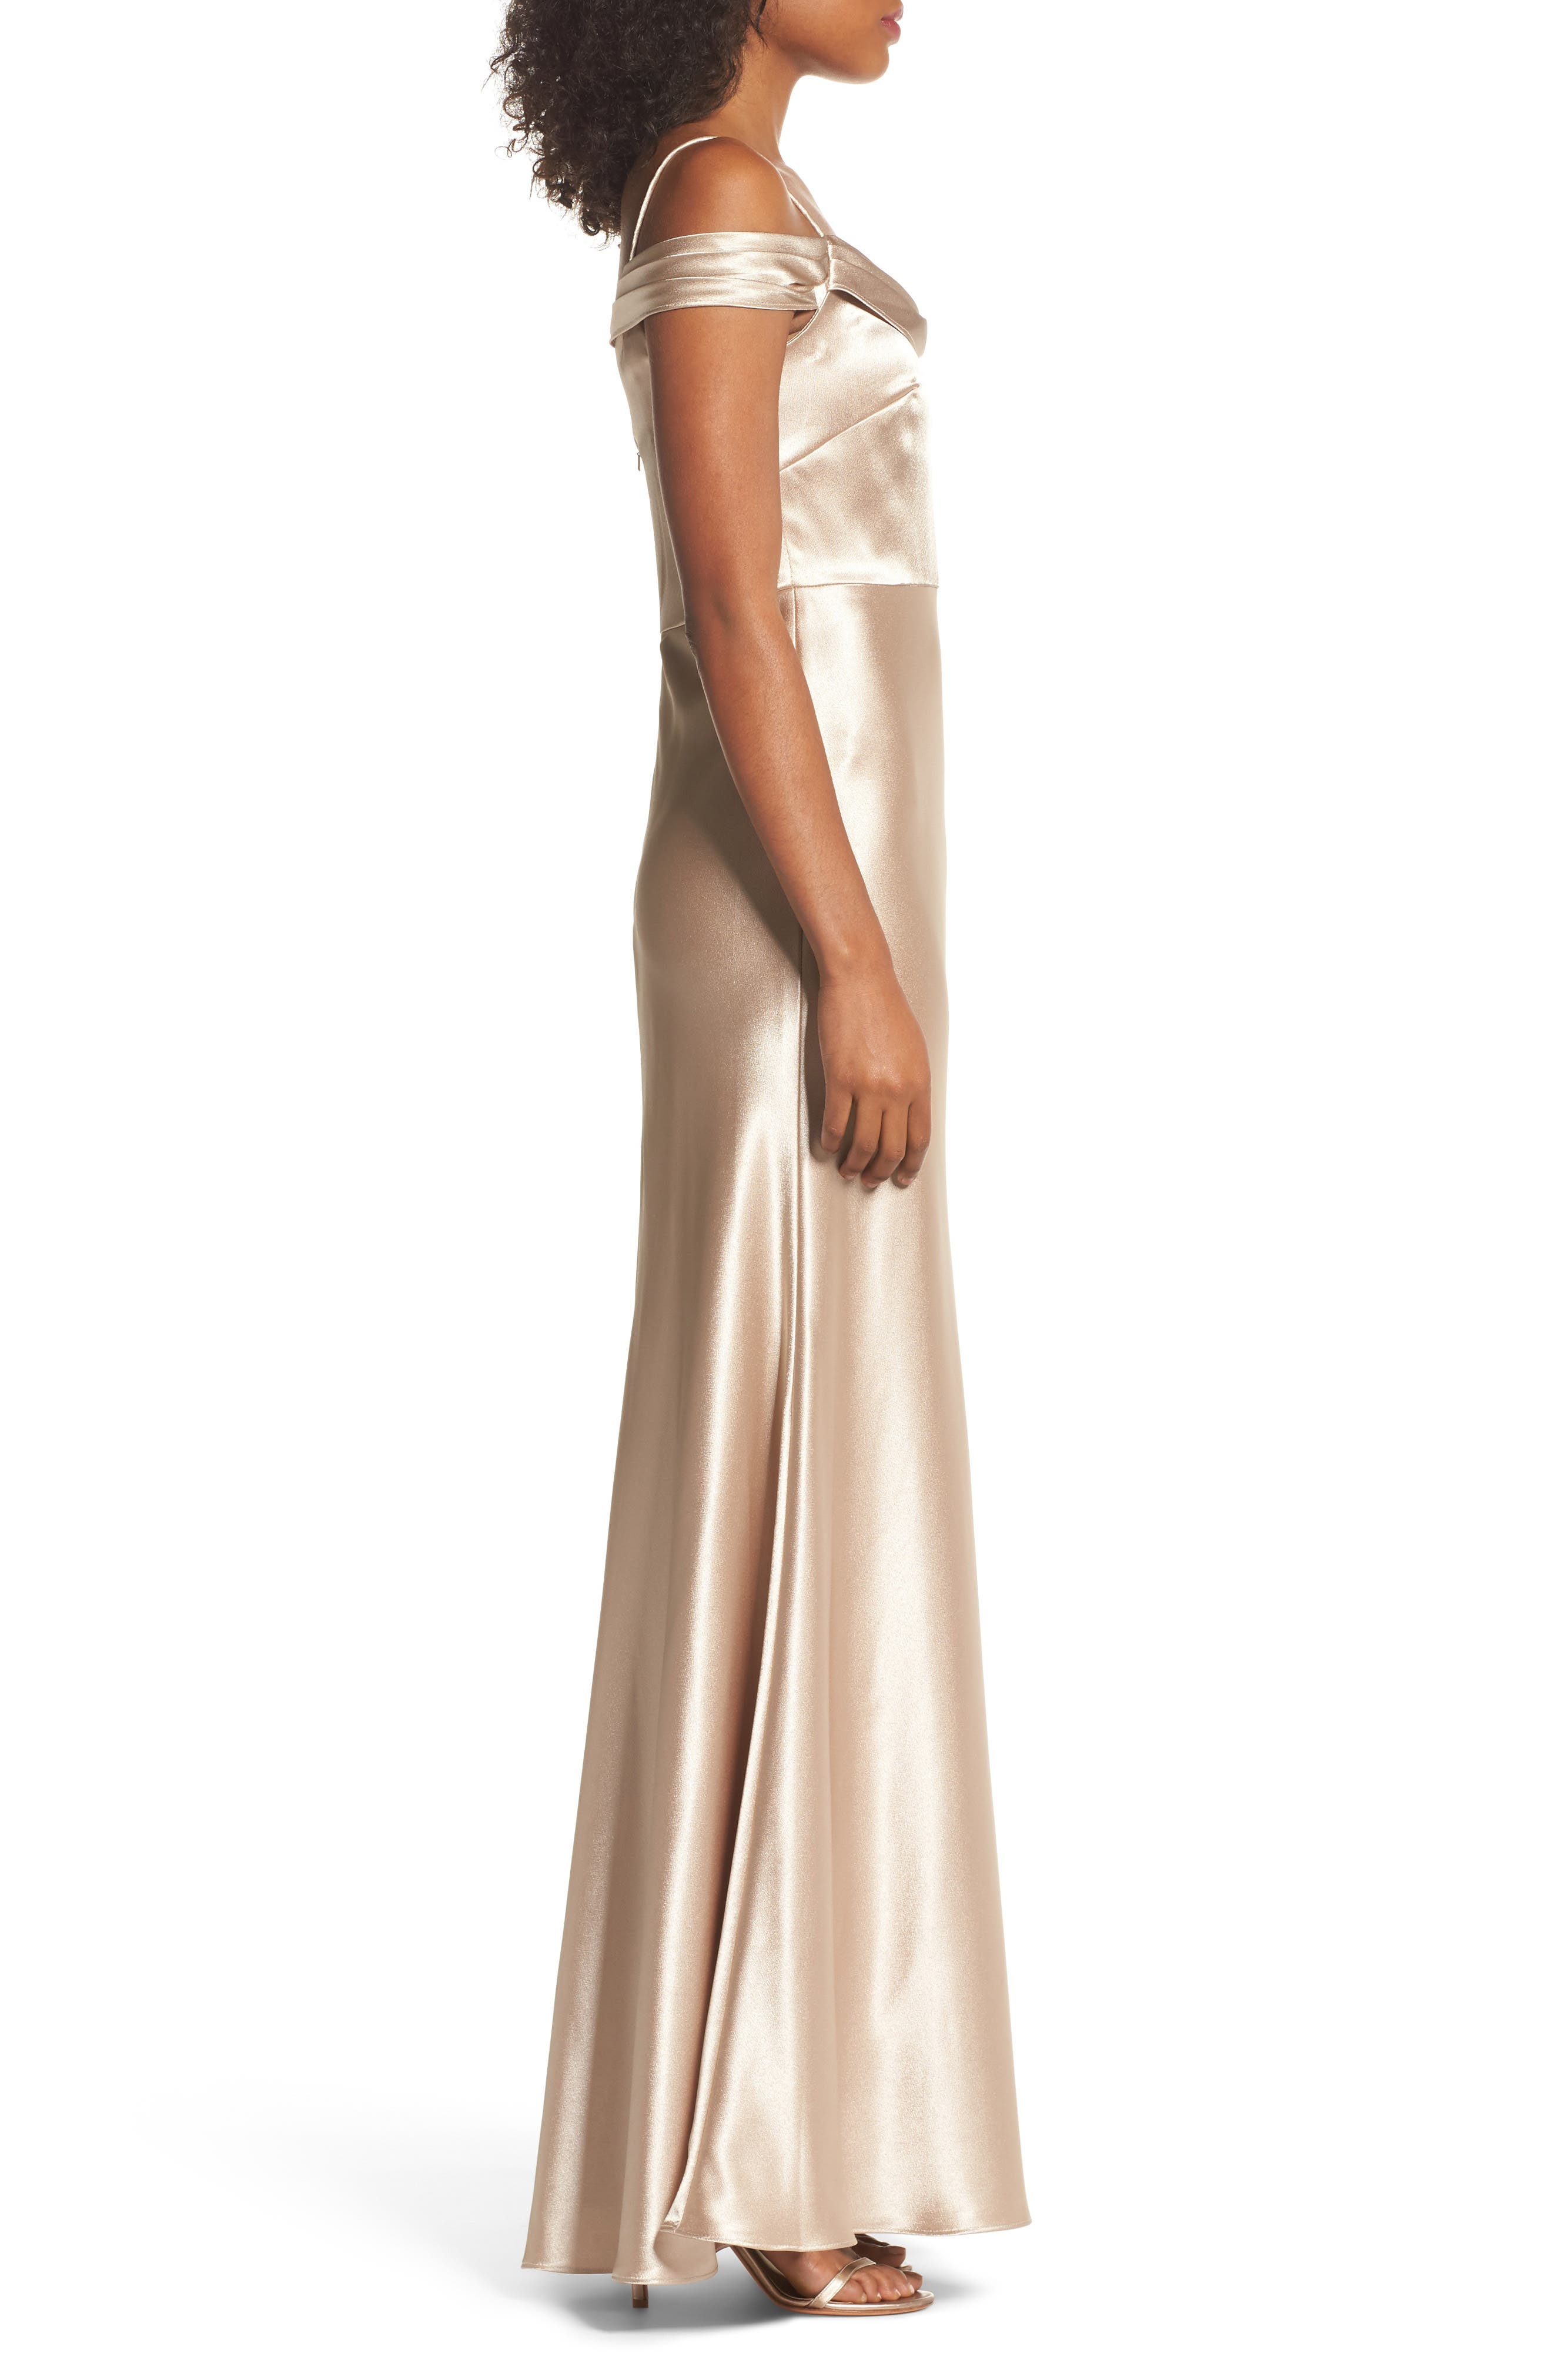 JENNY YOO, Serene Satin Off the Shoulder Gown, Alternate thumbnail 3, color, LATTE